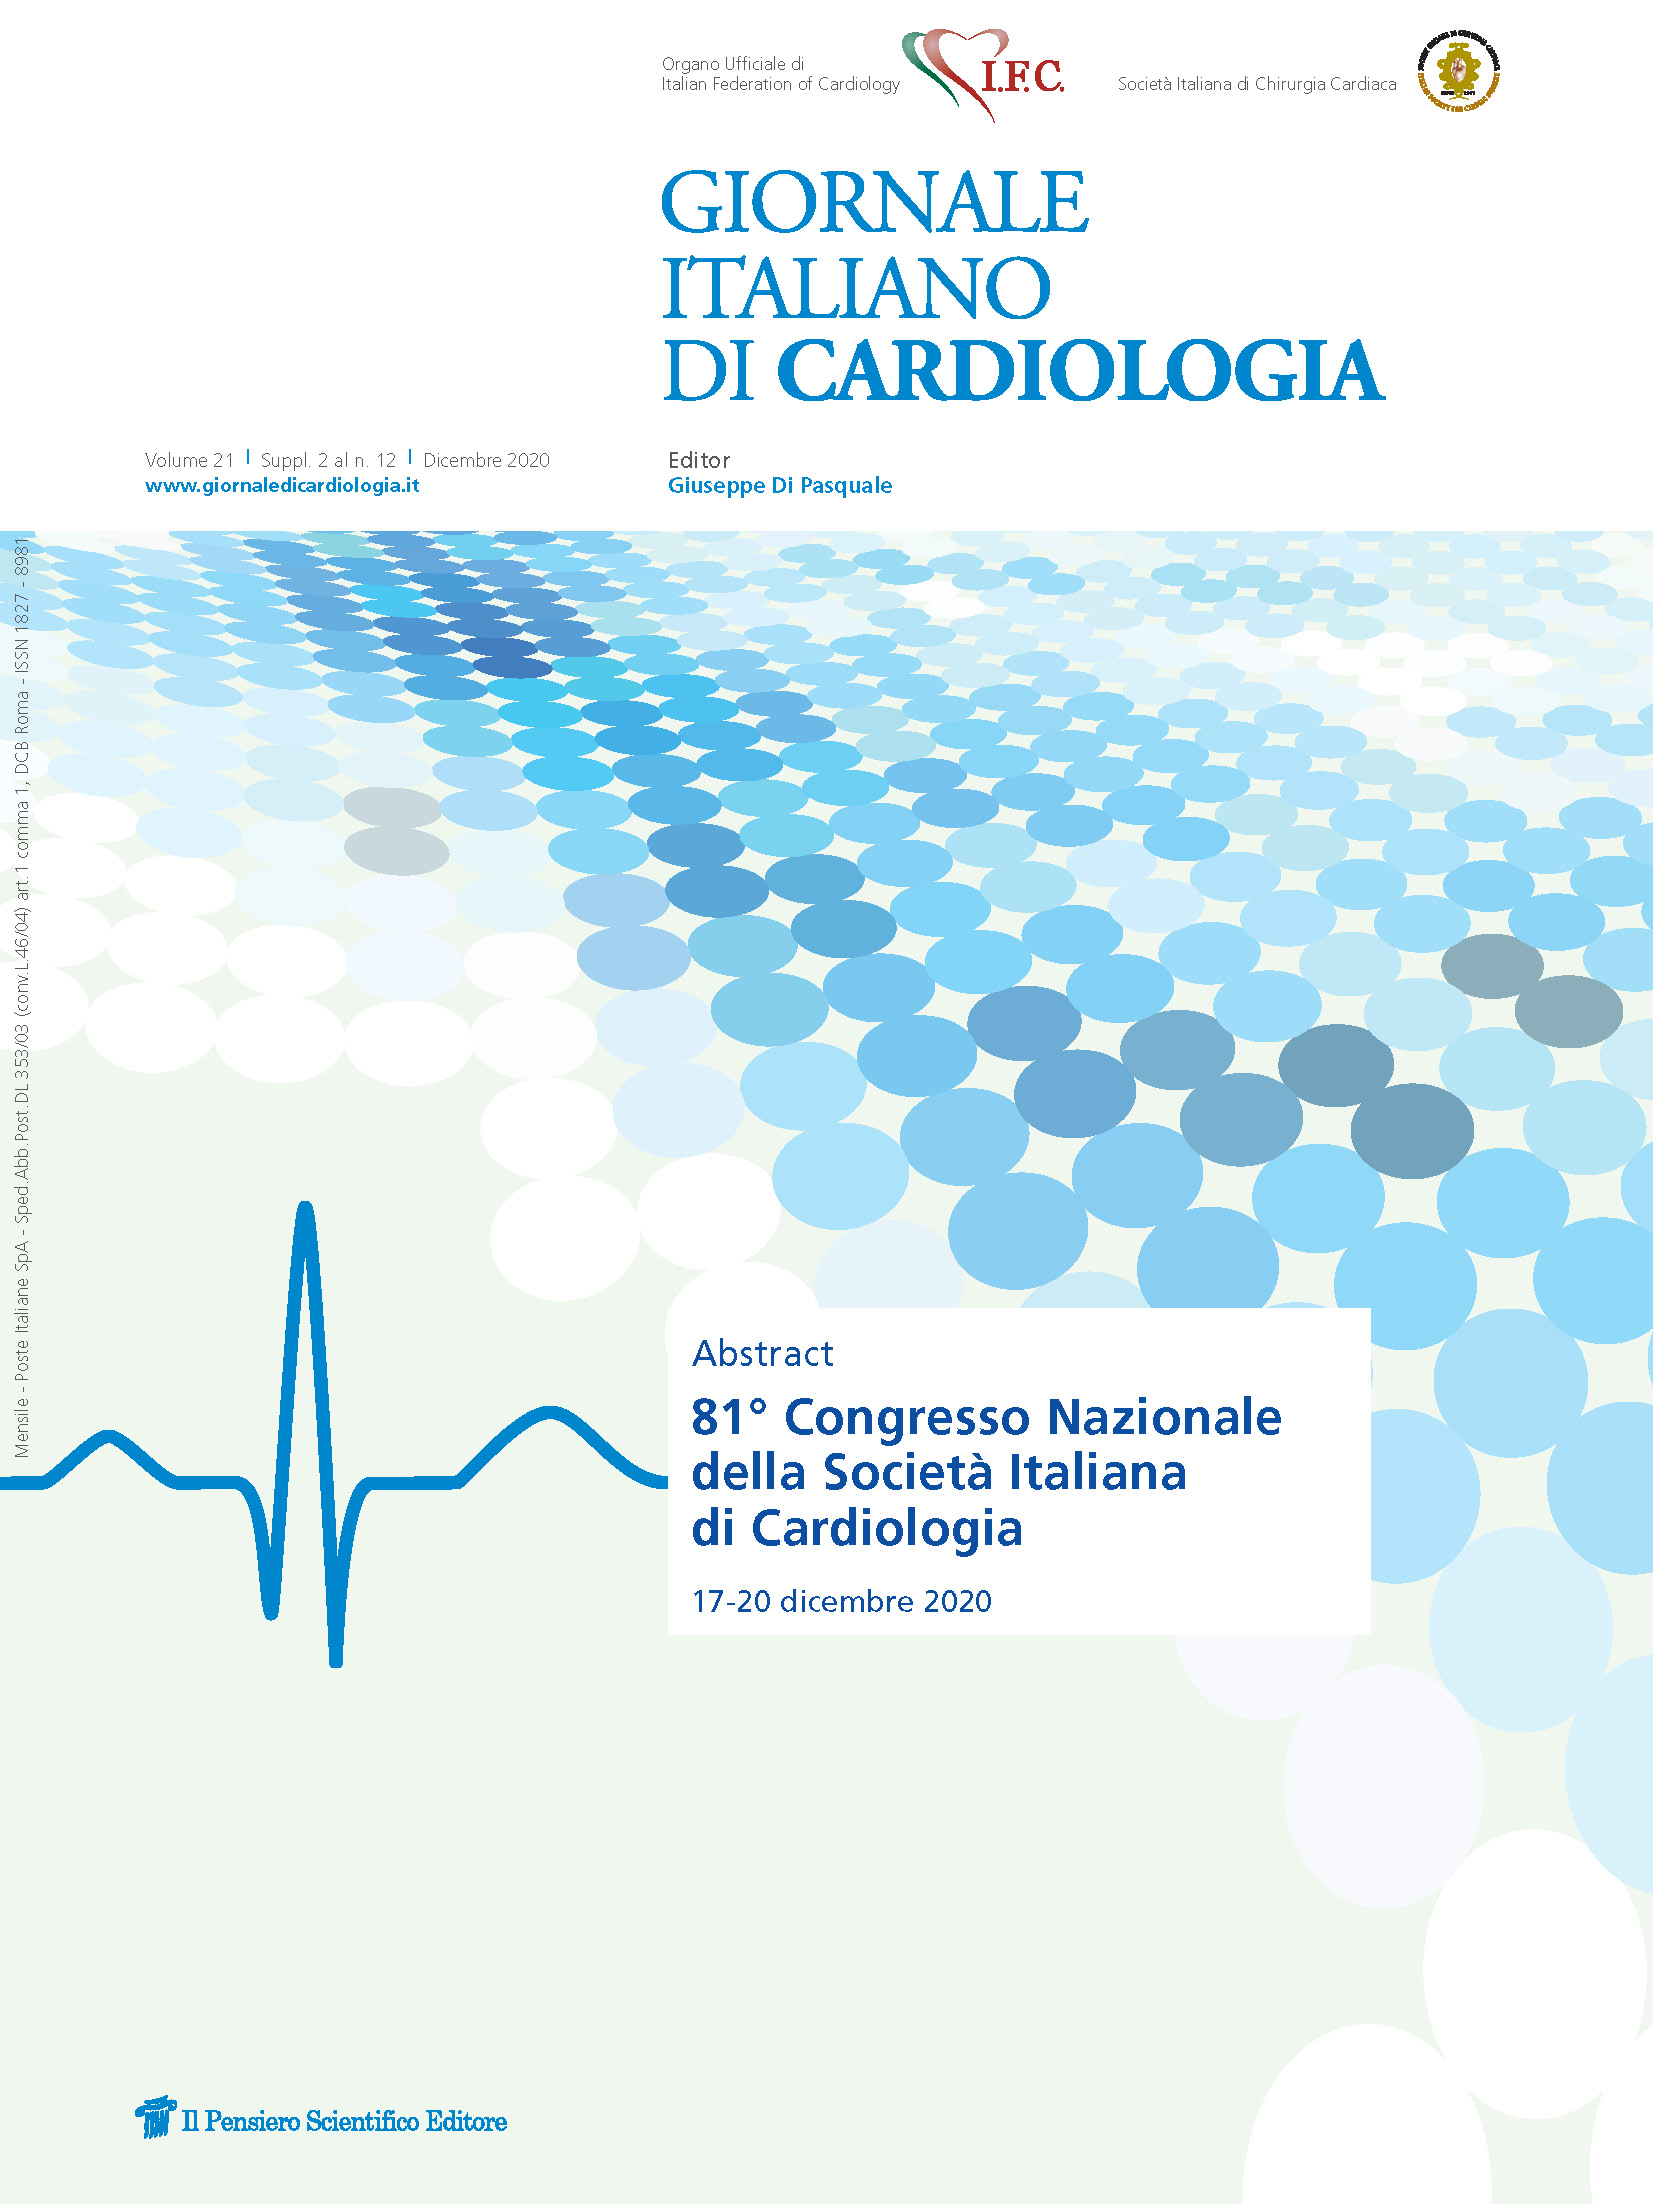 2020 Vol. 21 Suppl. 2 al N. 12 DicembreAbstract 81° Congresso Nazionale SIC